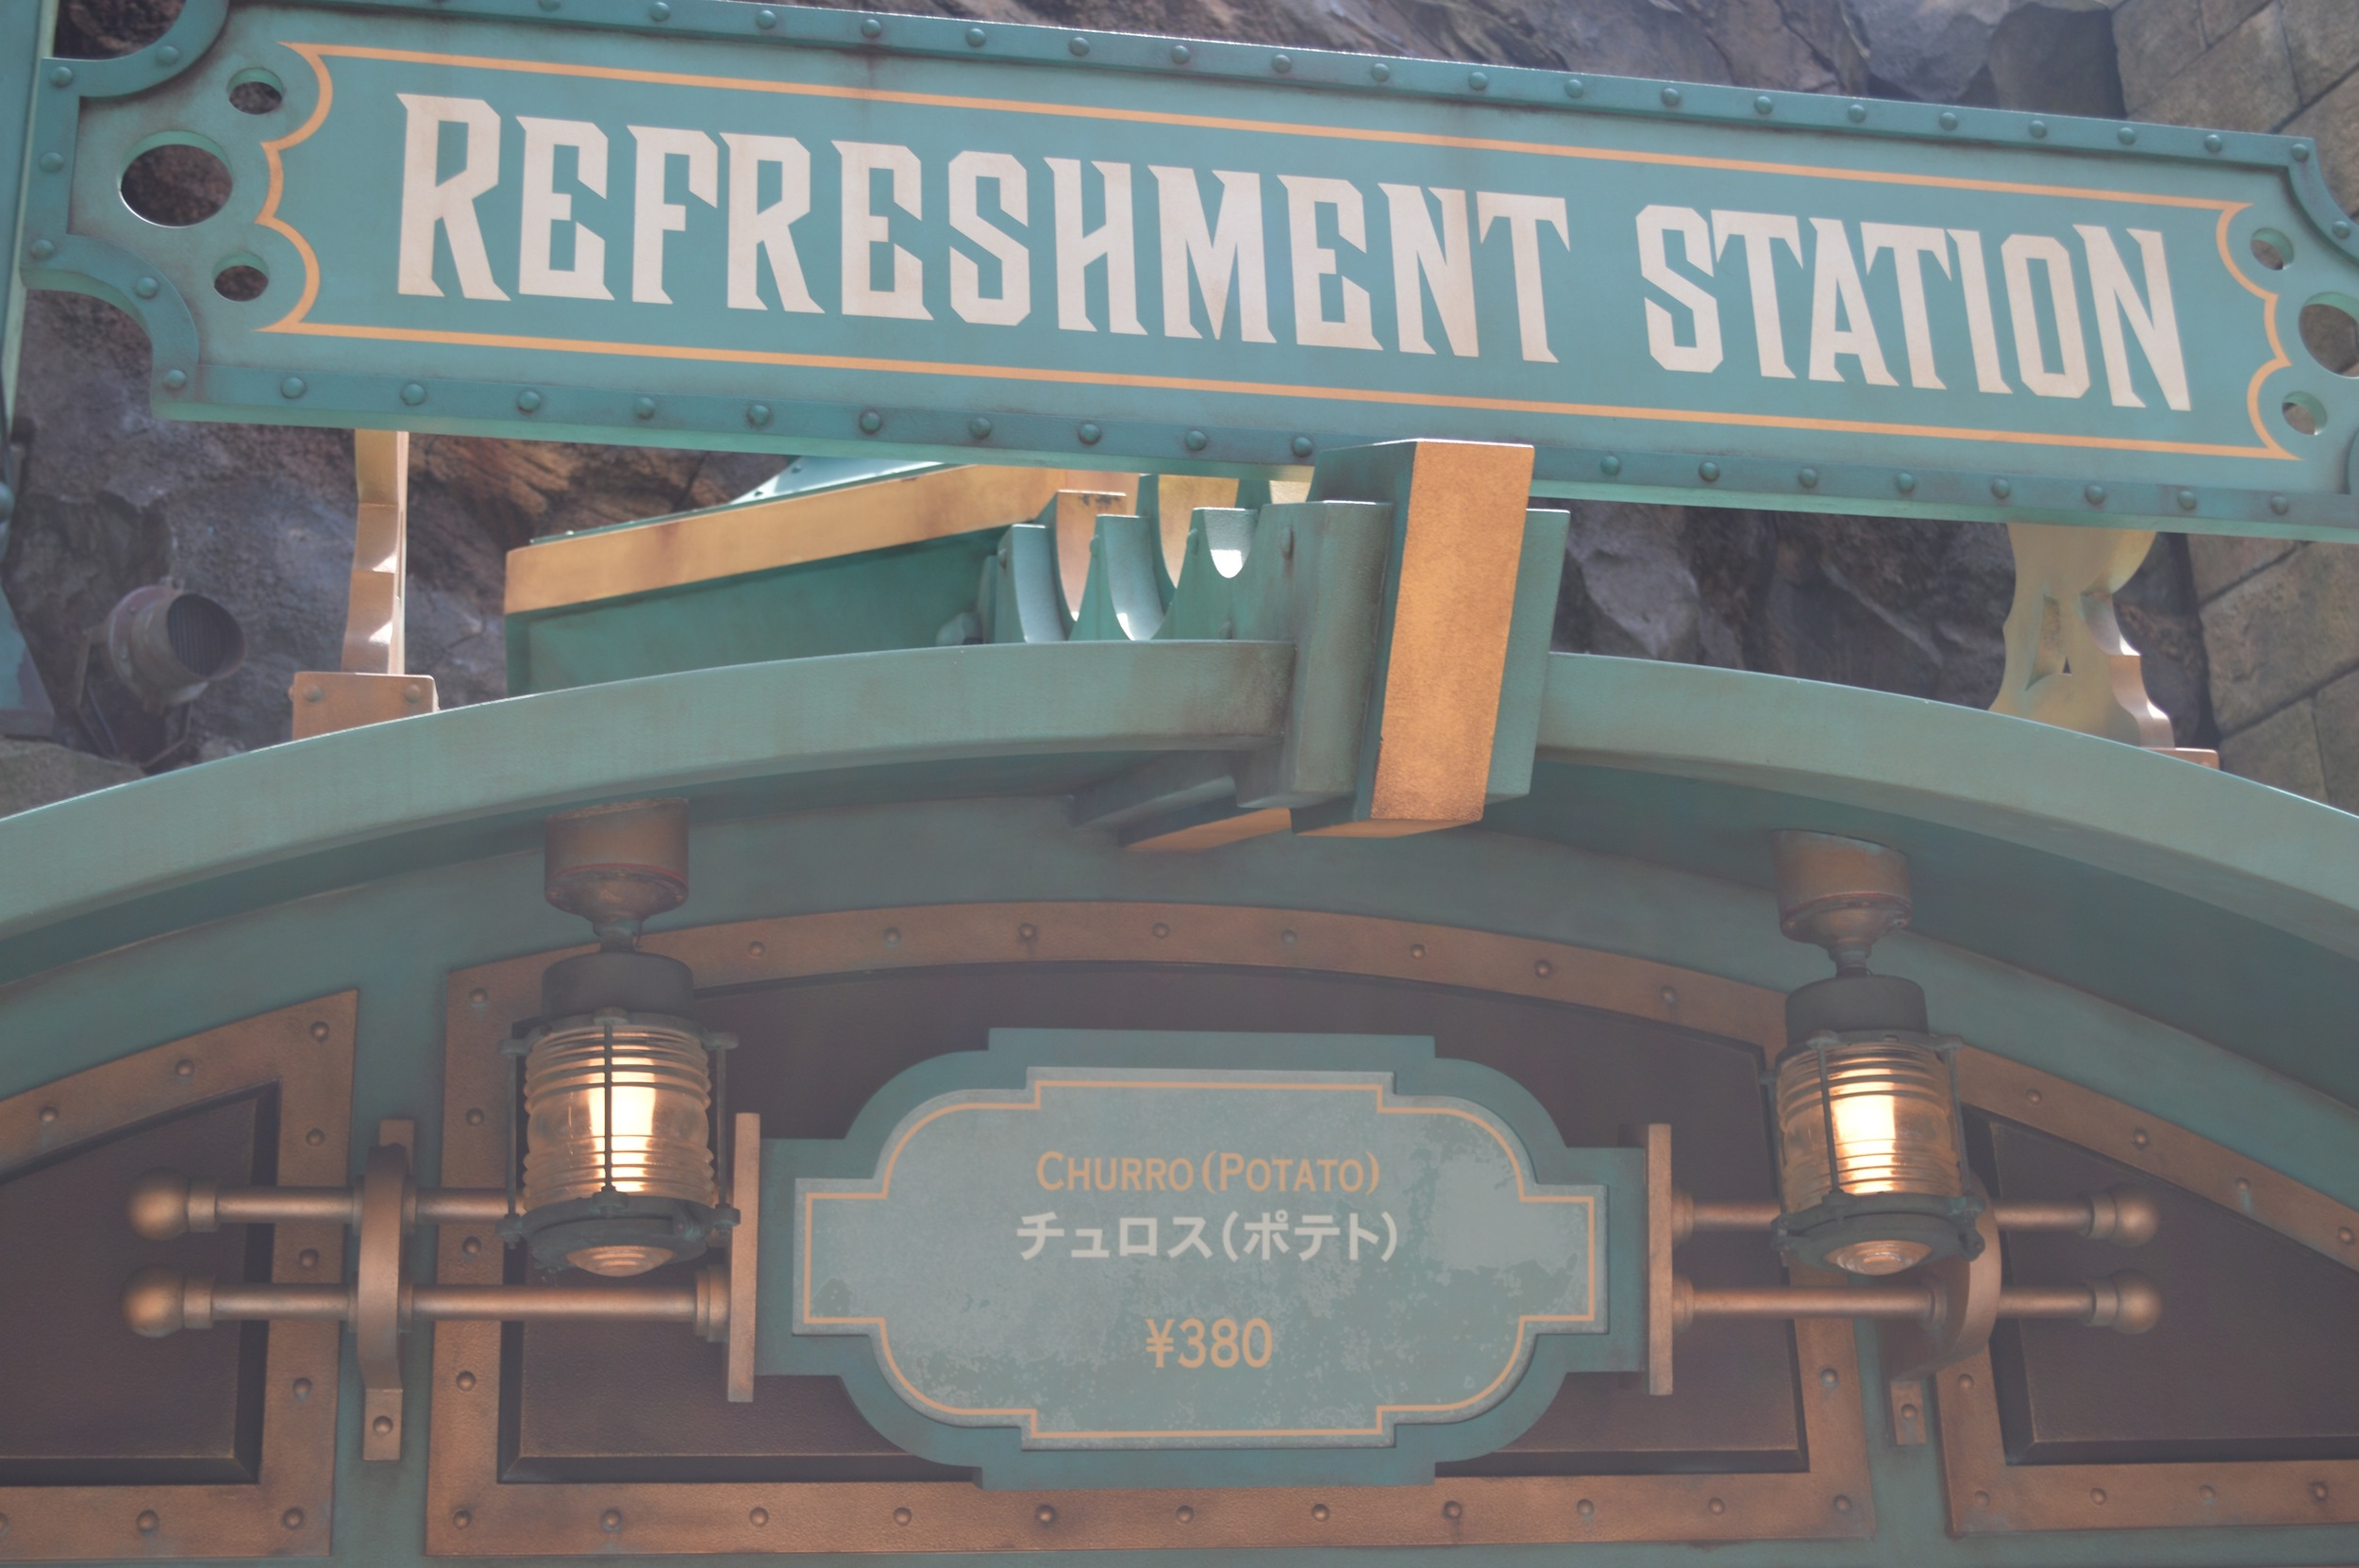 There's a new snack in Refreshment Station